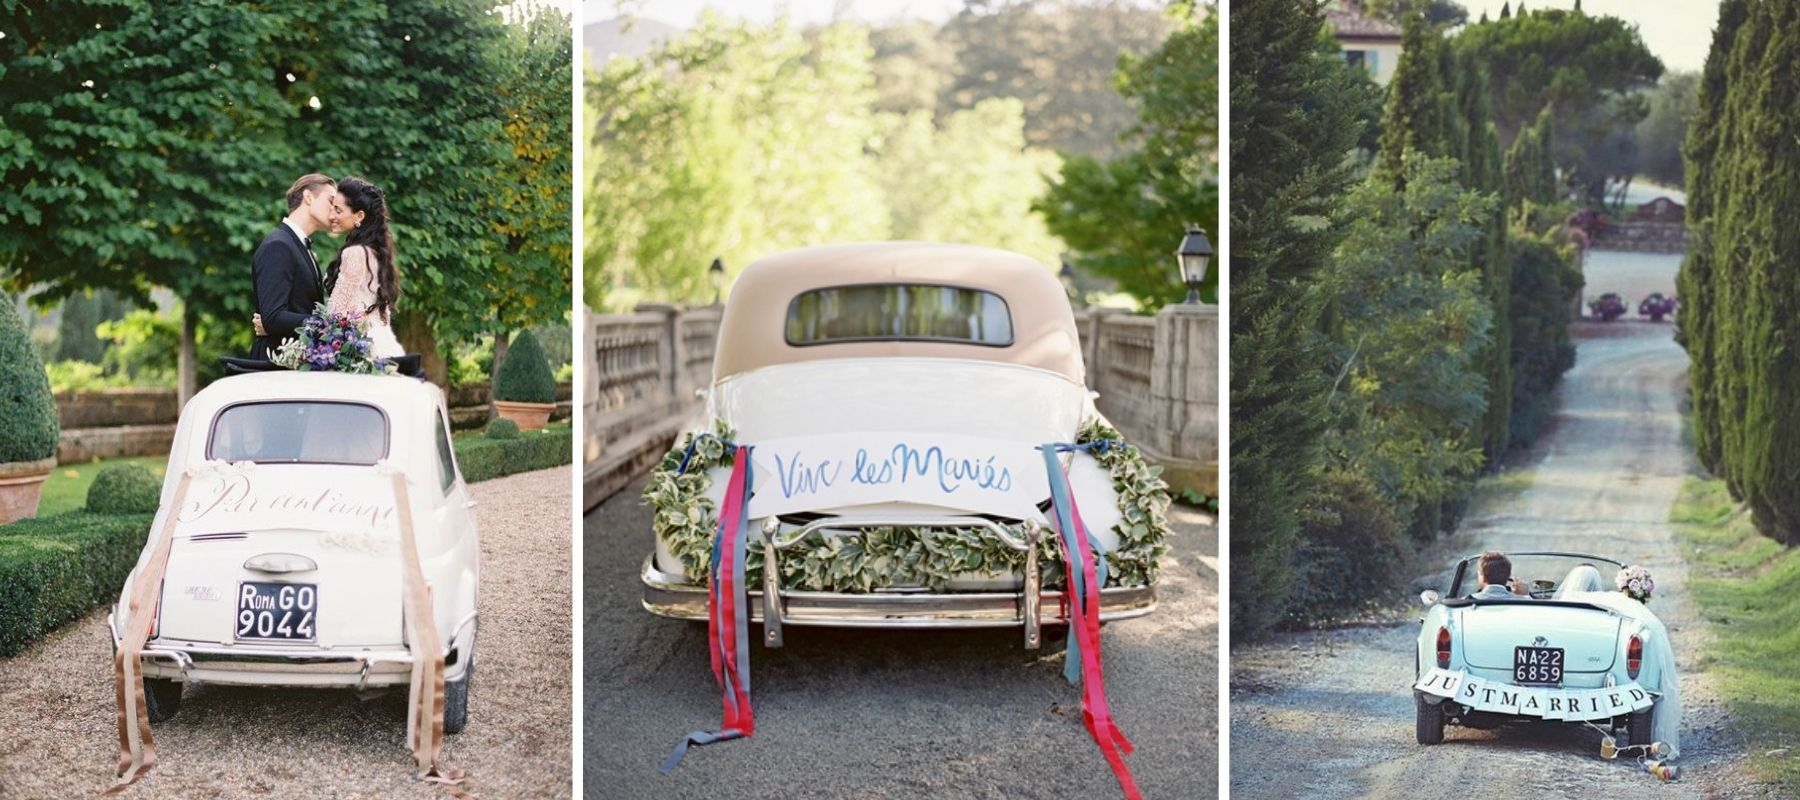 déco voiture just married